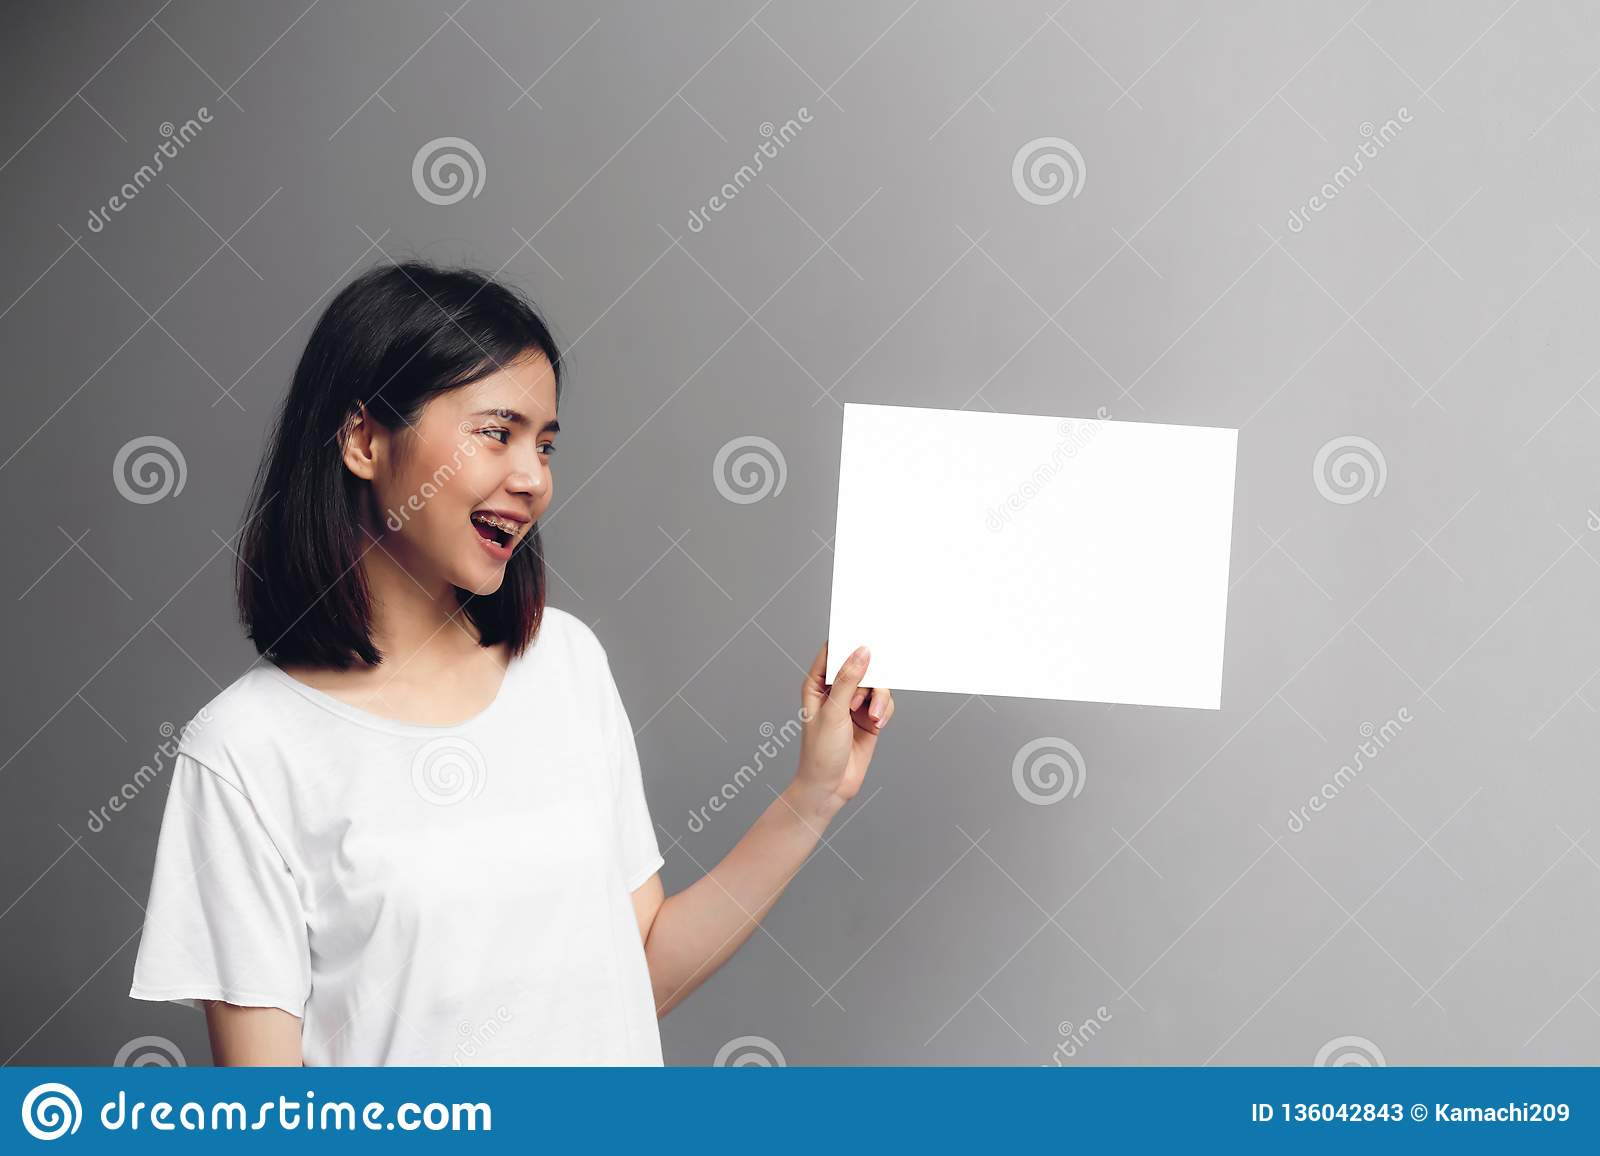 Young woman holding a blank poster for text on a white background